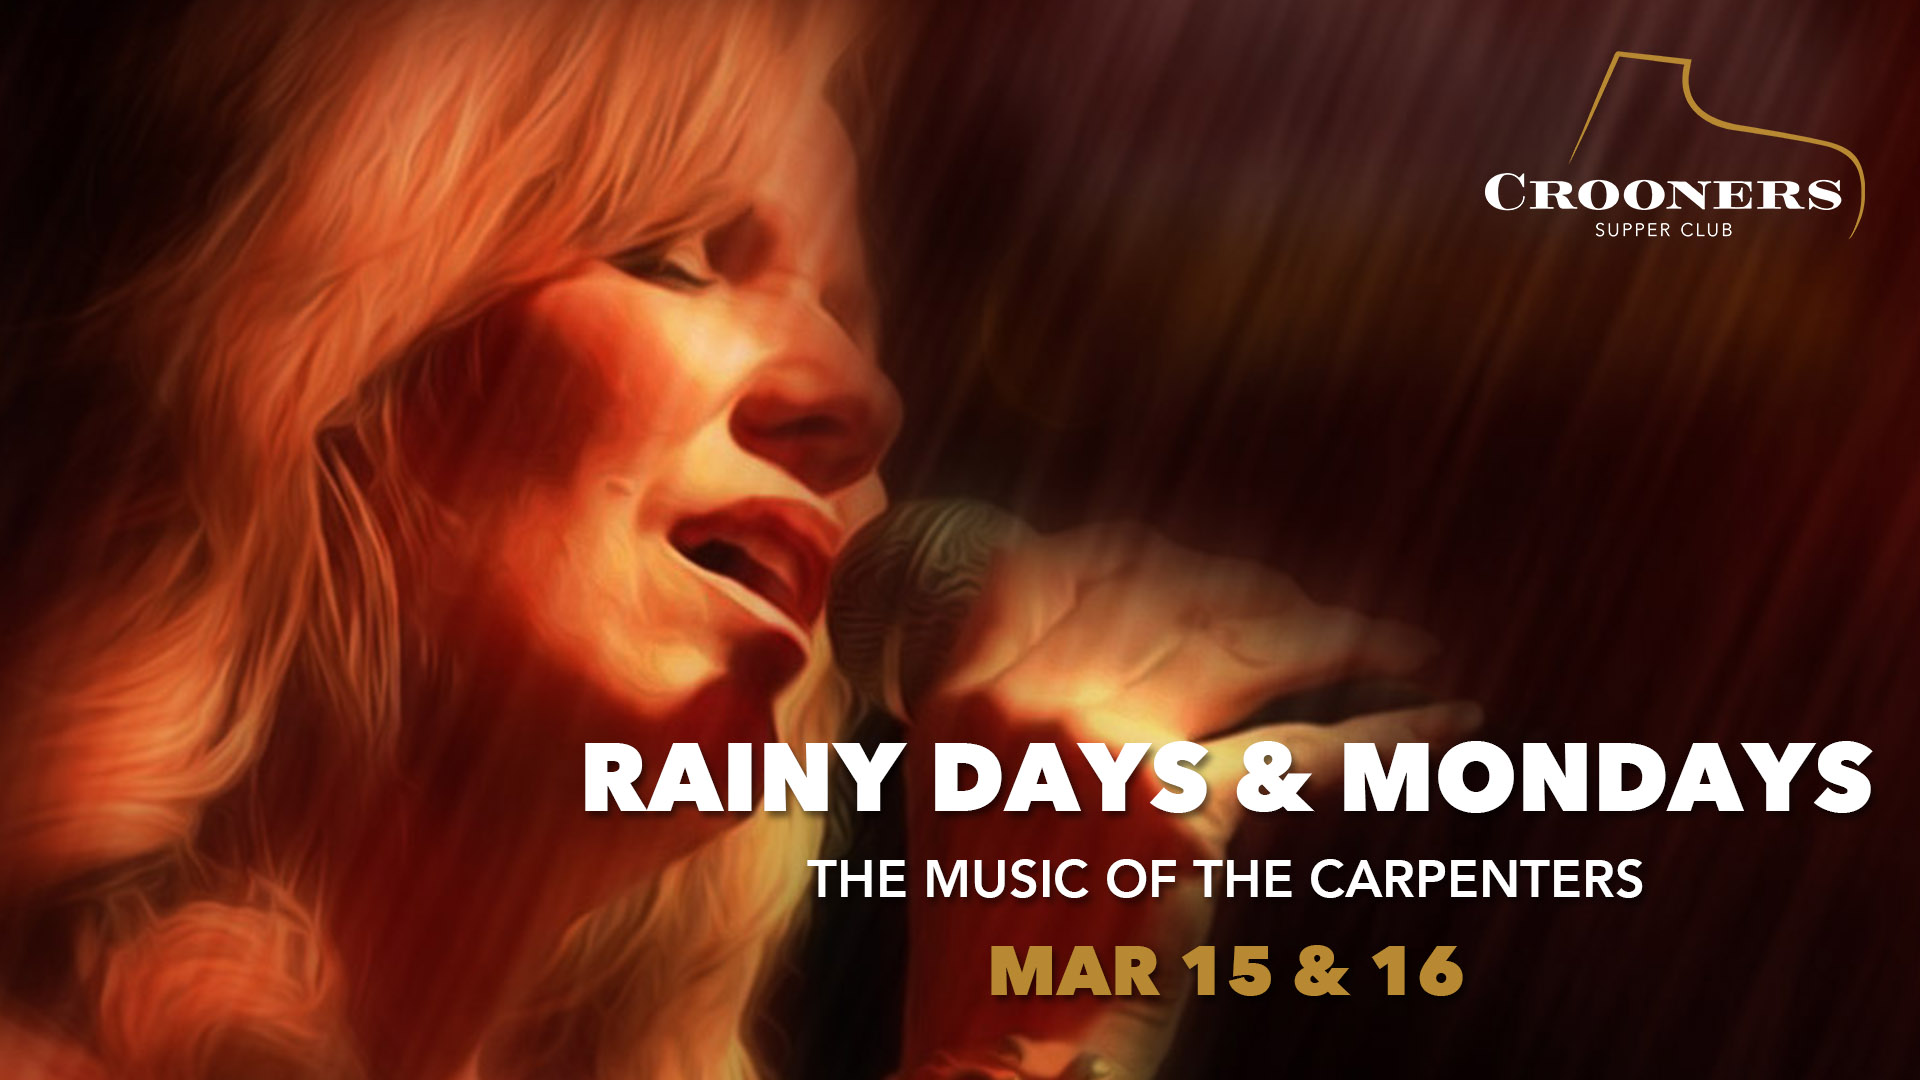 rainy days & Mondays - Aimée Lee and The Superstars moves in to the music of The Carpenters, one of the biggest selling pop groups of all time. The sibling duo of Karen and Richard were known for their soft-rock, deeply melodic songs, recorded on ten albums over 14 years, becoming both an antidote to and an emblem of the turbulent '70s. In the hands of Lee and The Superstars, who number 13, they are certainly prime for a revisit.